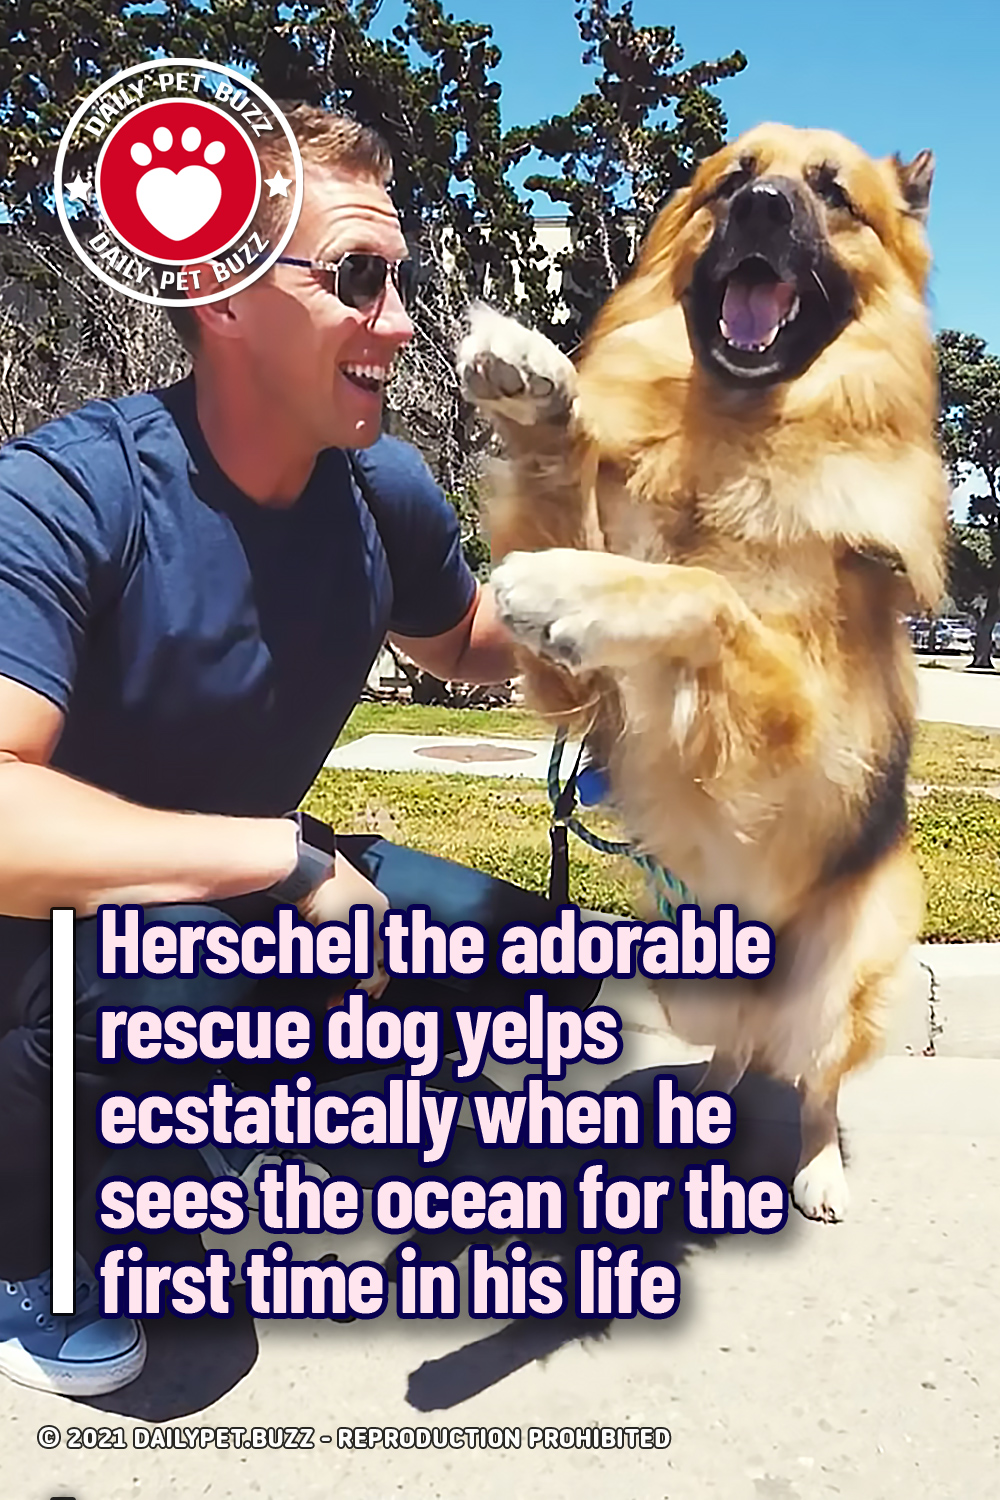 Herschel the adorable rescue dog yelps ecstatically when he sees the ocean for the first time in his life